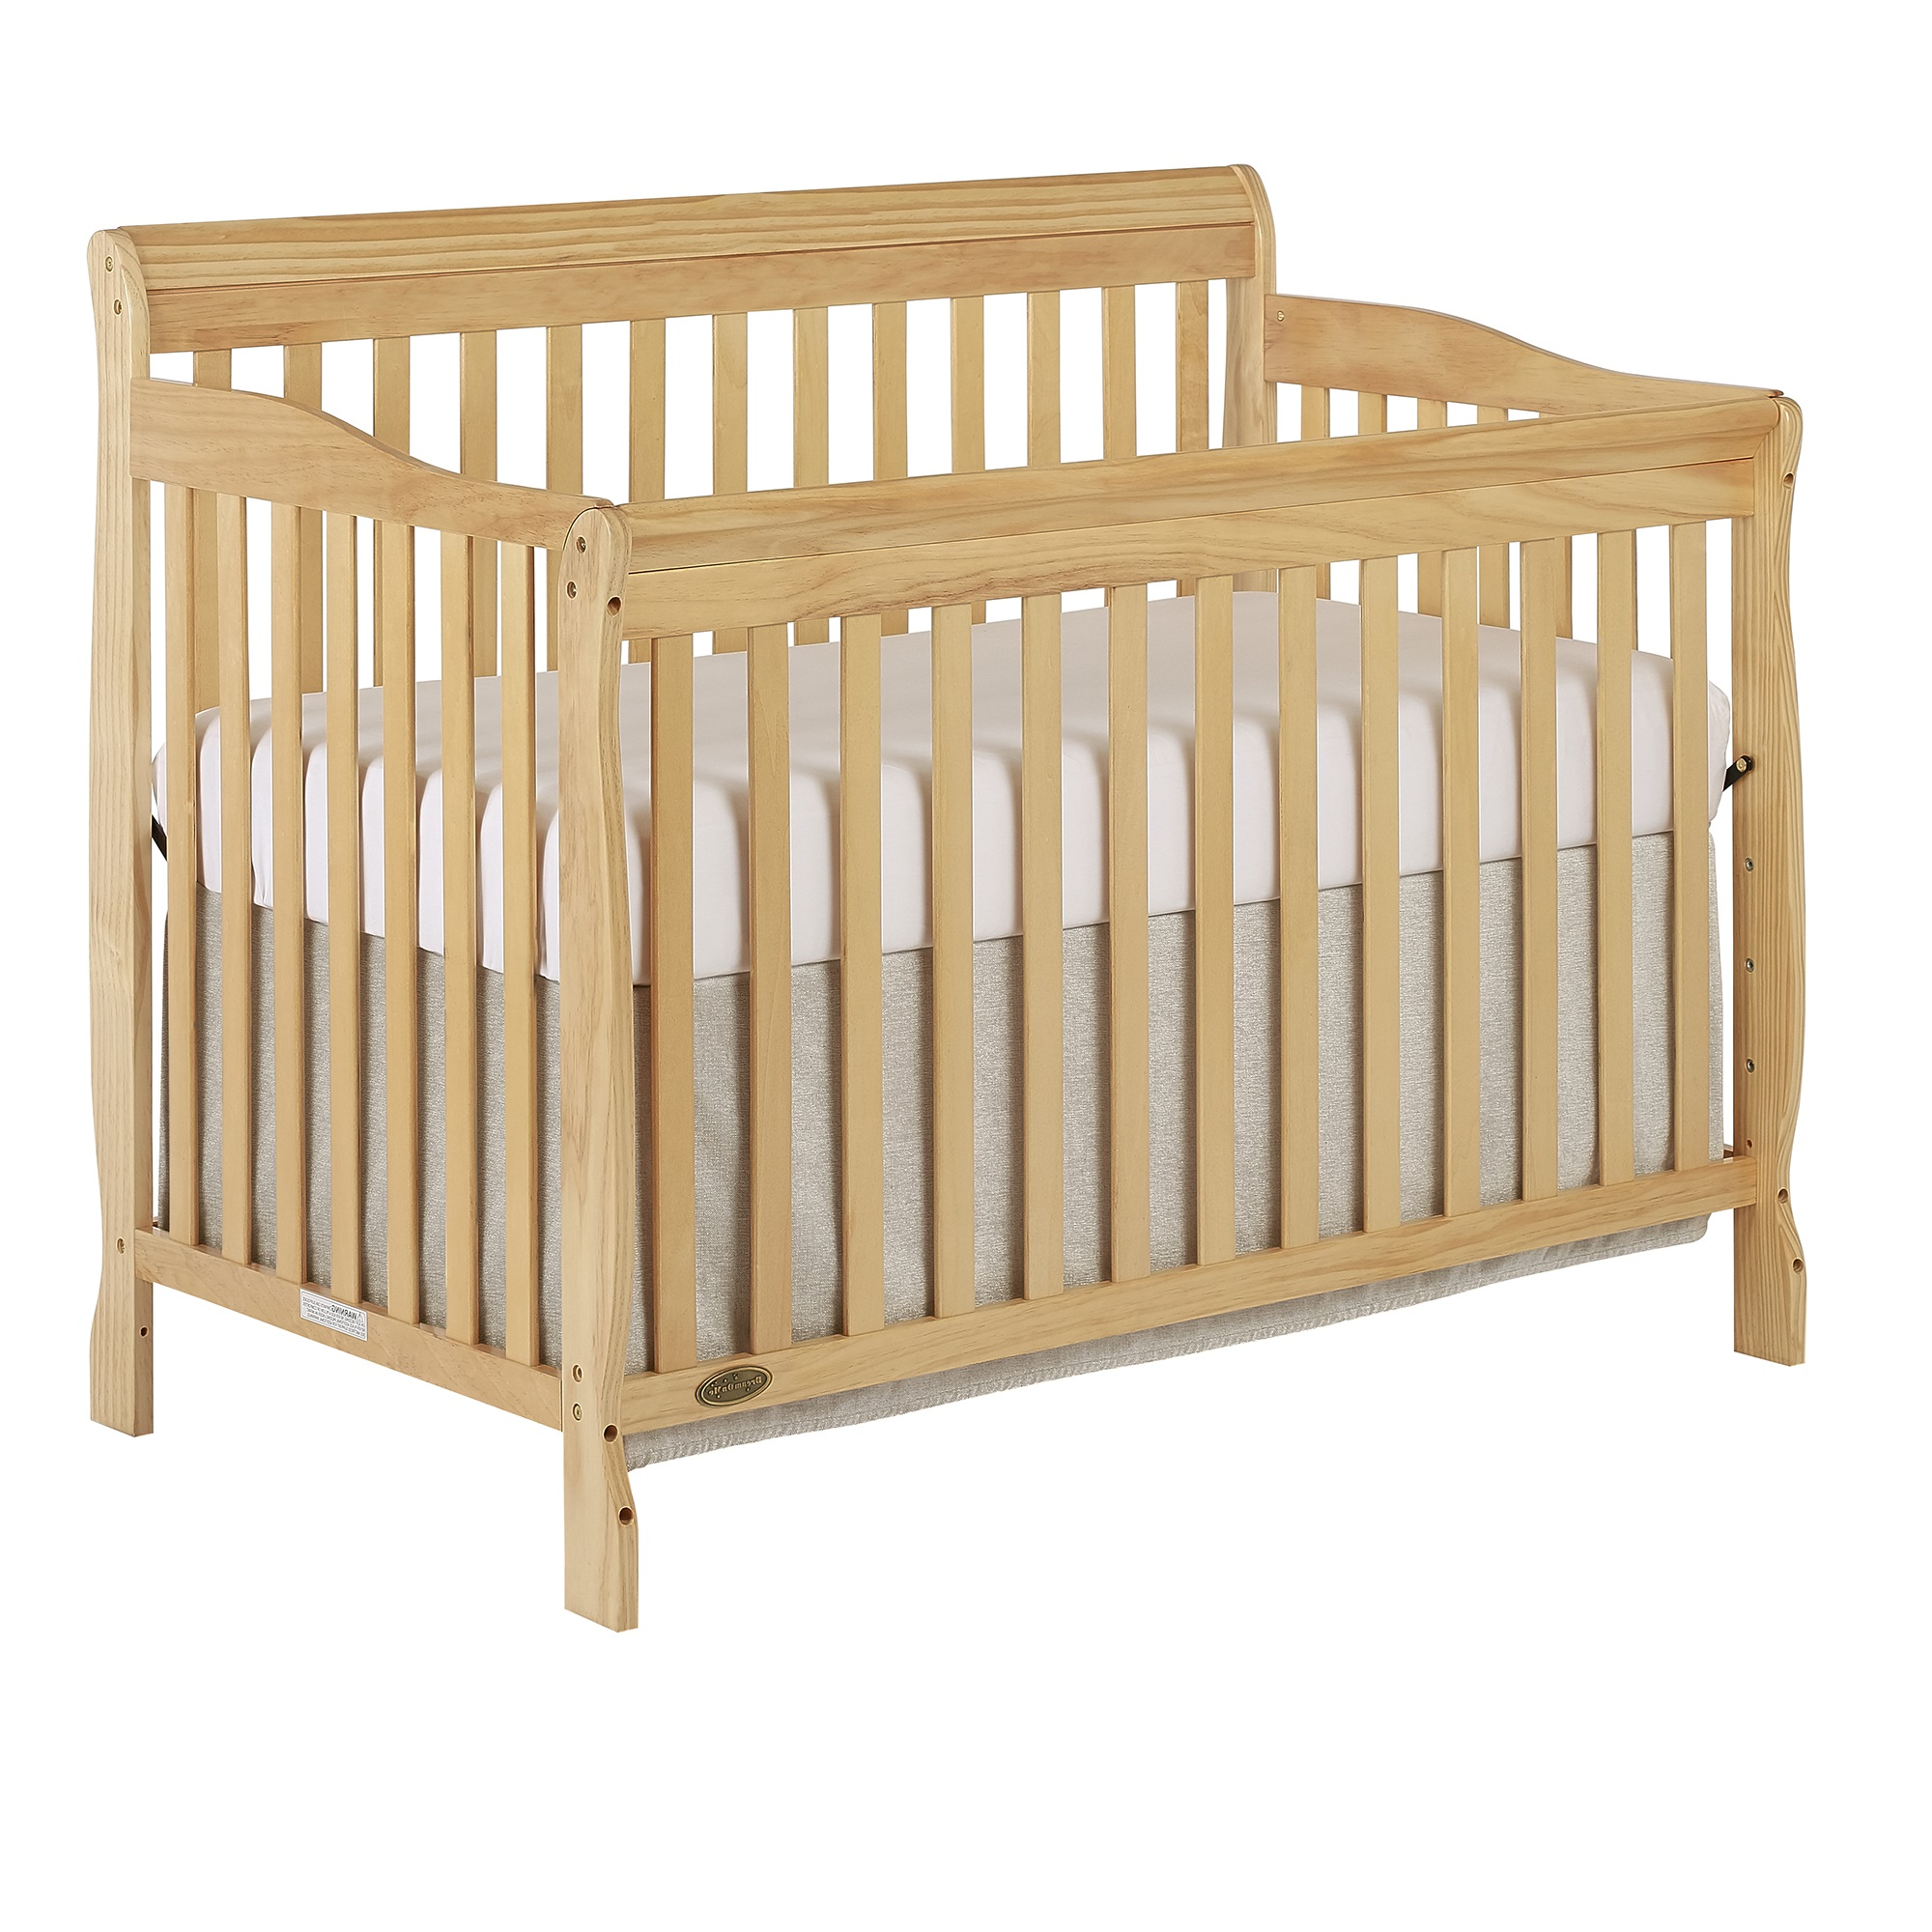 Dream On Me Ashton 5-in-1 Convertible Crib, Natural